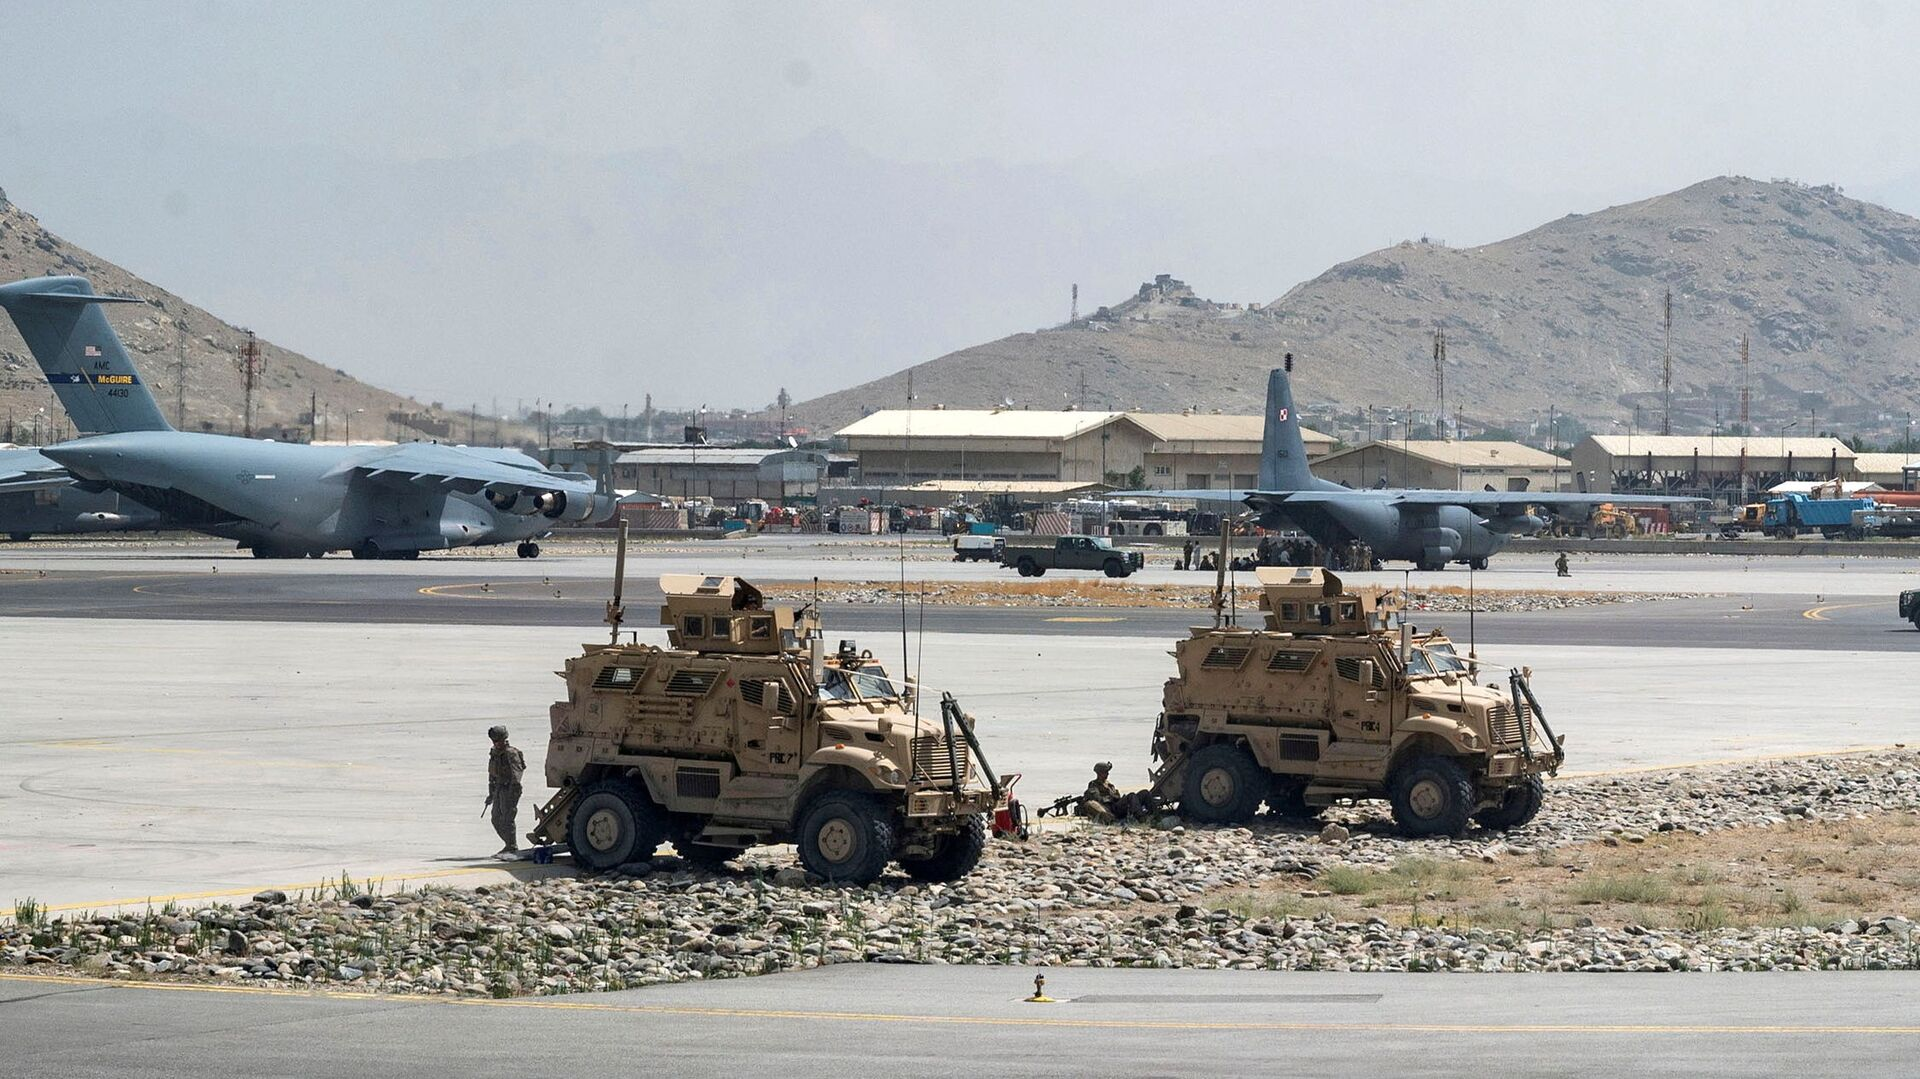 FILE PHOTO: FILE PHOTO: U.S. Army soldiers assigned to the 82nd Airborne Division patrol Hamid Karzai International Airport in Kabul, Afghanistan August 17, 2021. Picture taken August 17, 2021.  U.S. Air Force/Senior Airman Taylor Crul/Handout via REUTERS  THIS IMAGE HAS BEEN SUPPLIED BY A THIRD PARTY. THIS PICTURE WAS PROCESSED BY REUTERS TO ENHANCE QUALITY. AN UNPROCESSED VERSION HAS BEEN PROVIDED SEPARATELY./File Photo/File Photo - Sputnik International, 1920, 24.08.2021